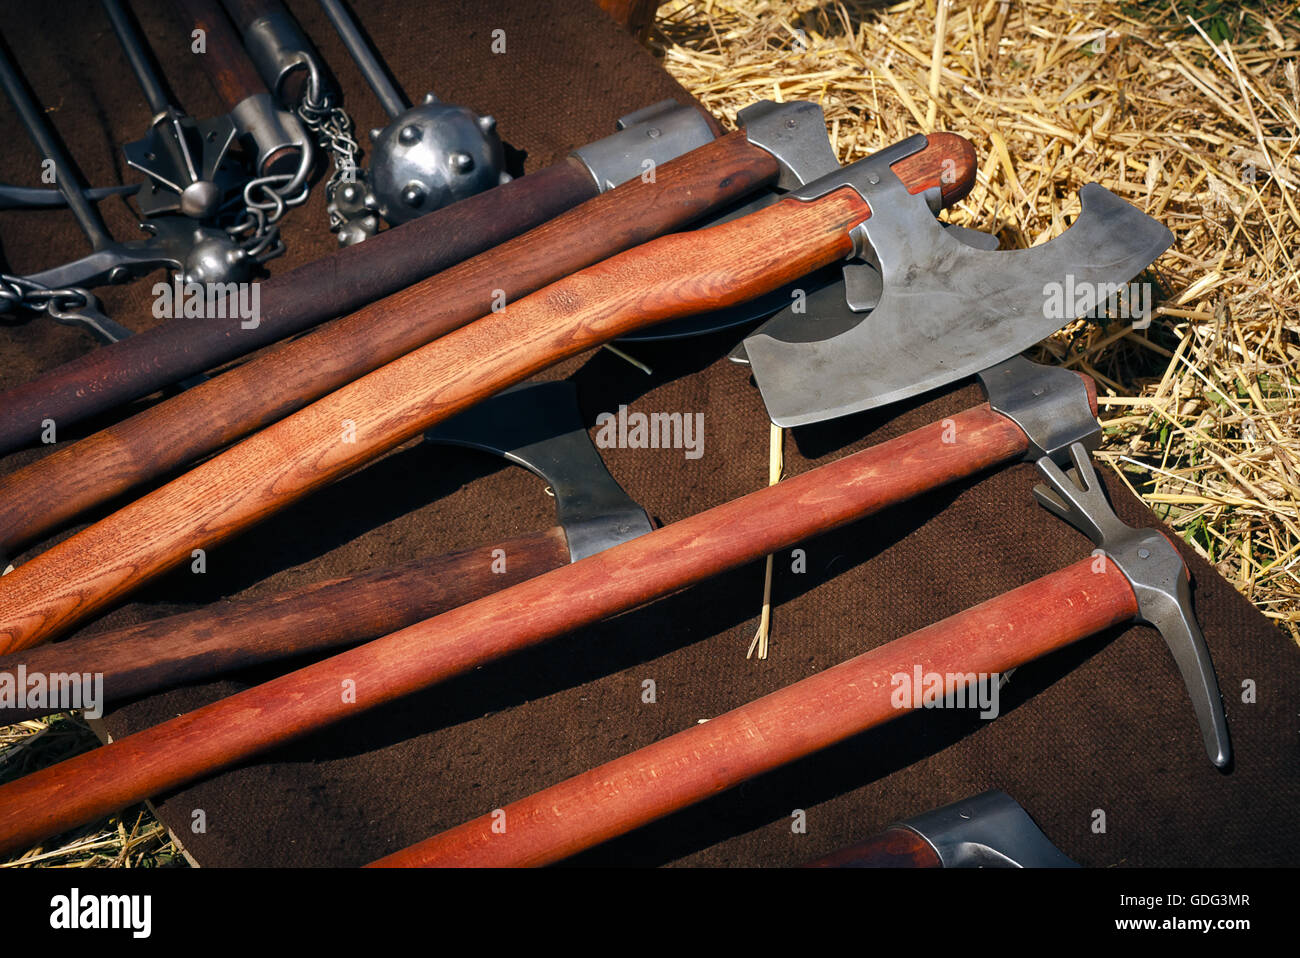 Medieval blunt weapon, battle axes and hammers Stock Photo